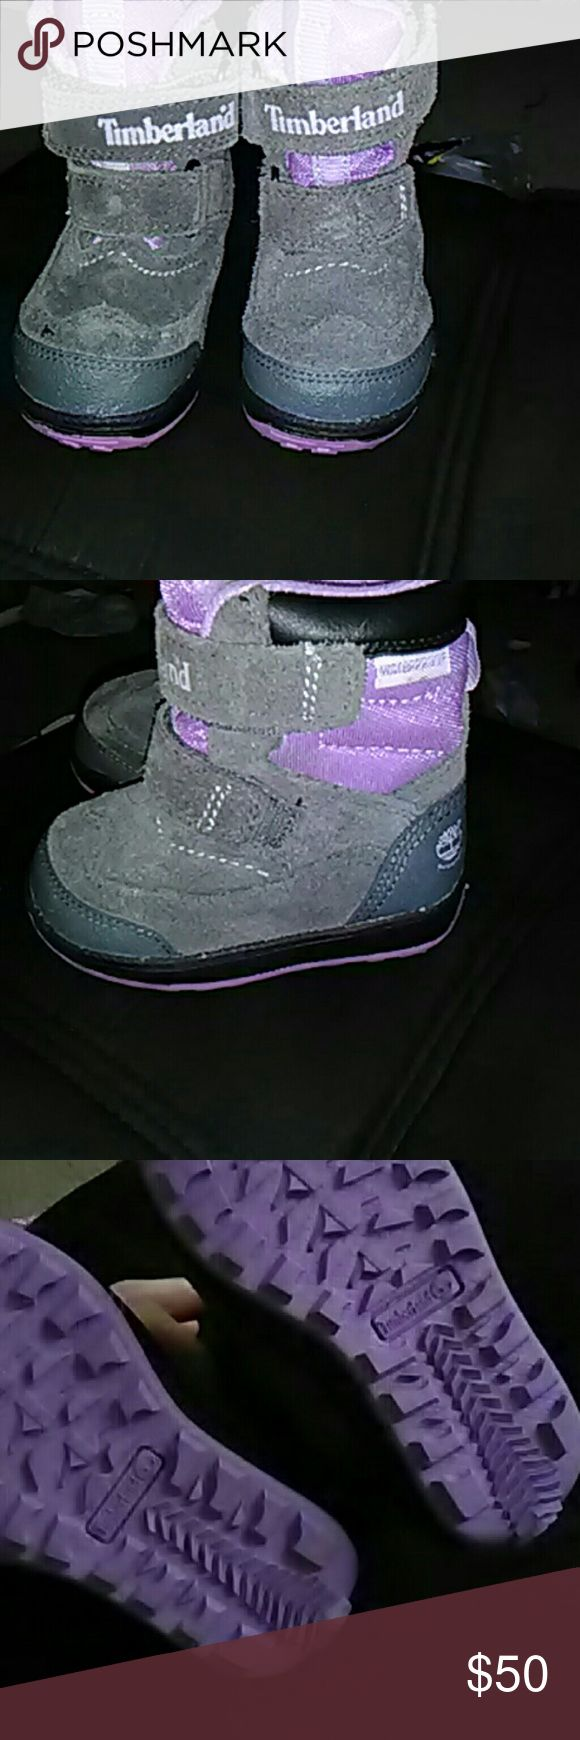 Size 5 infant timberland boots Waterproof timbs brand new never worn cones from a smoke and pet free home Timberland Shoes Boots